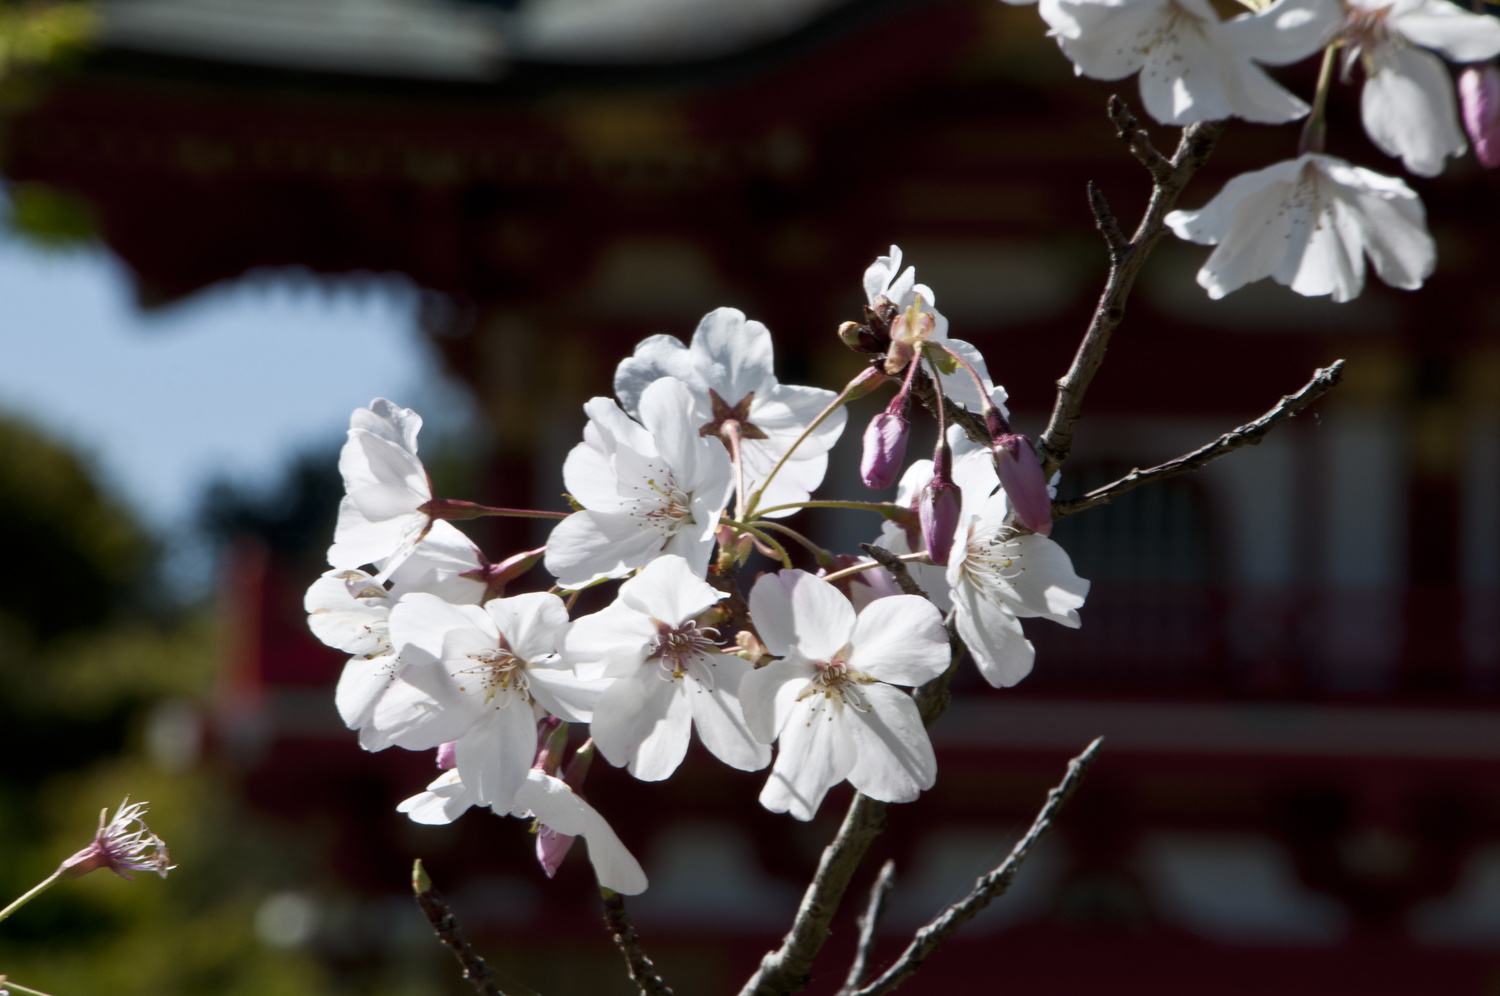 Cherry Blossom #3 by Christopher Reese